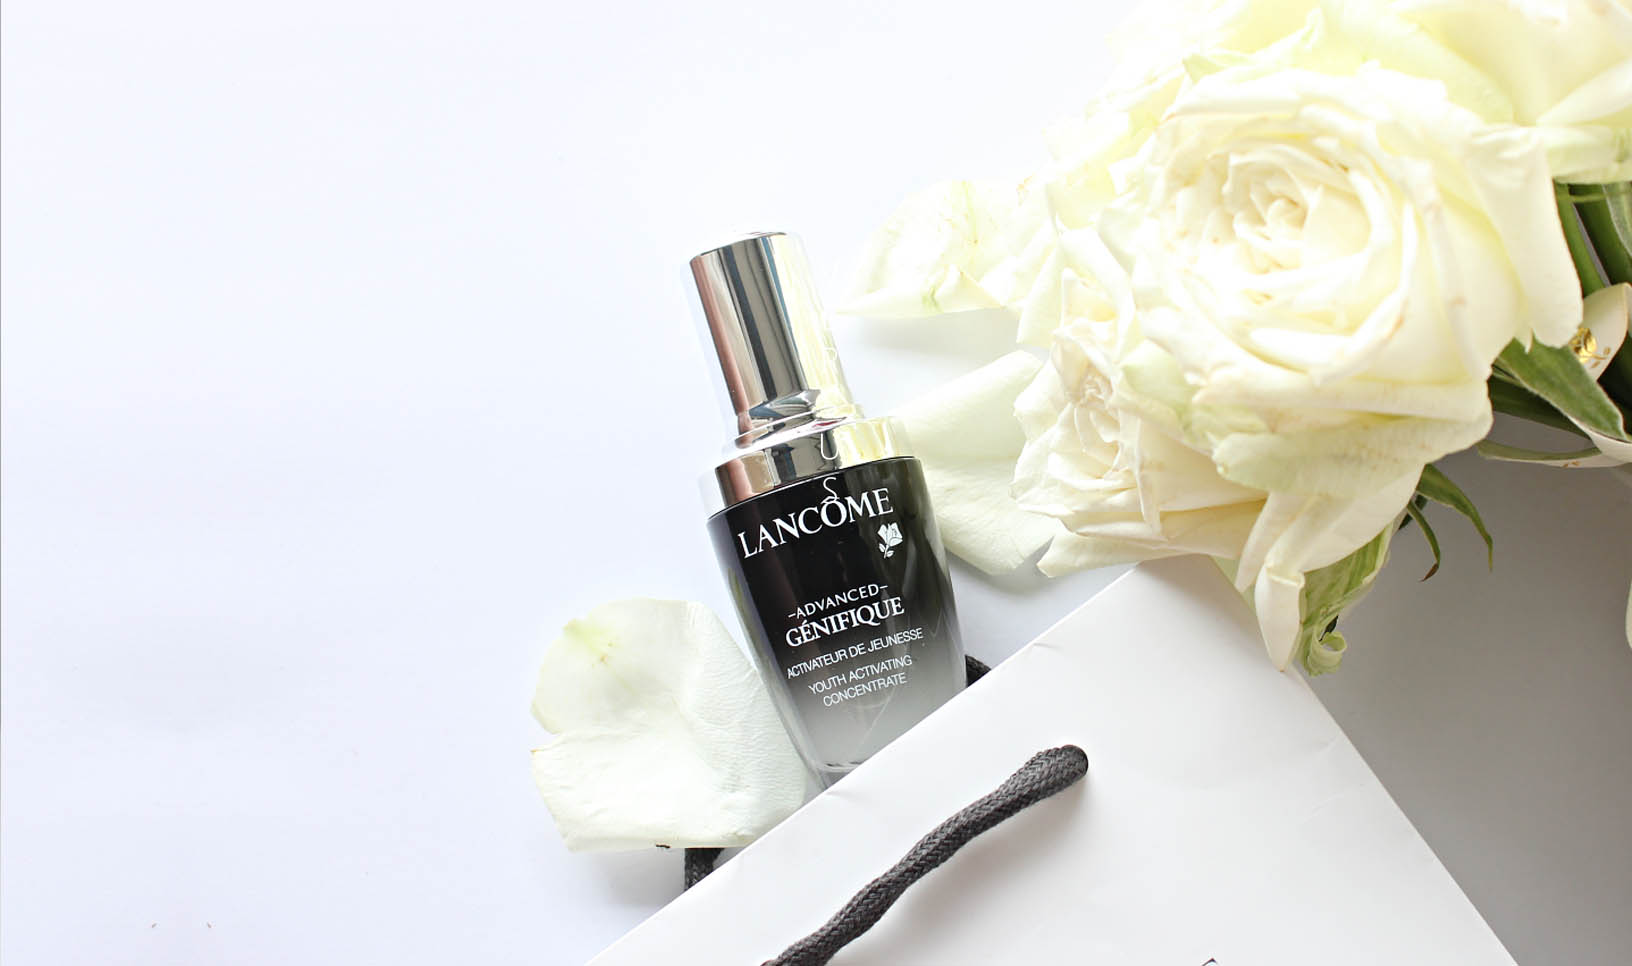 Lancôme Serum Review